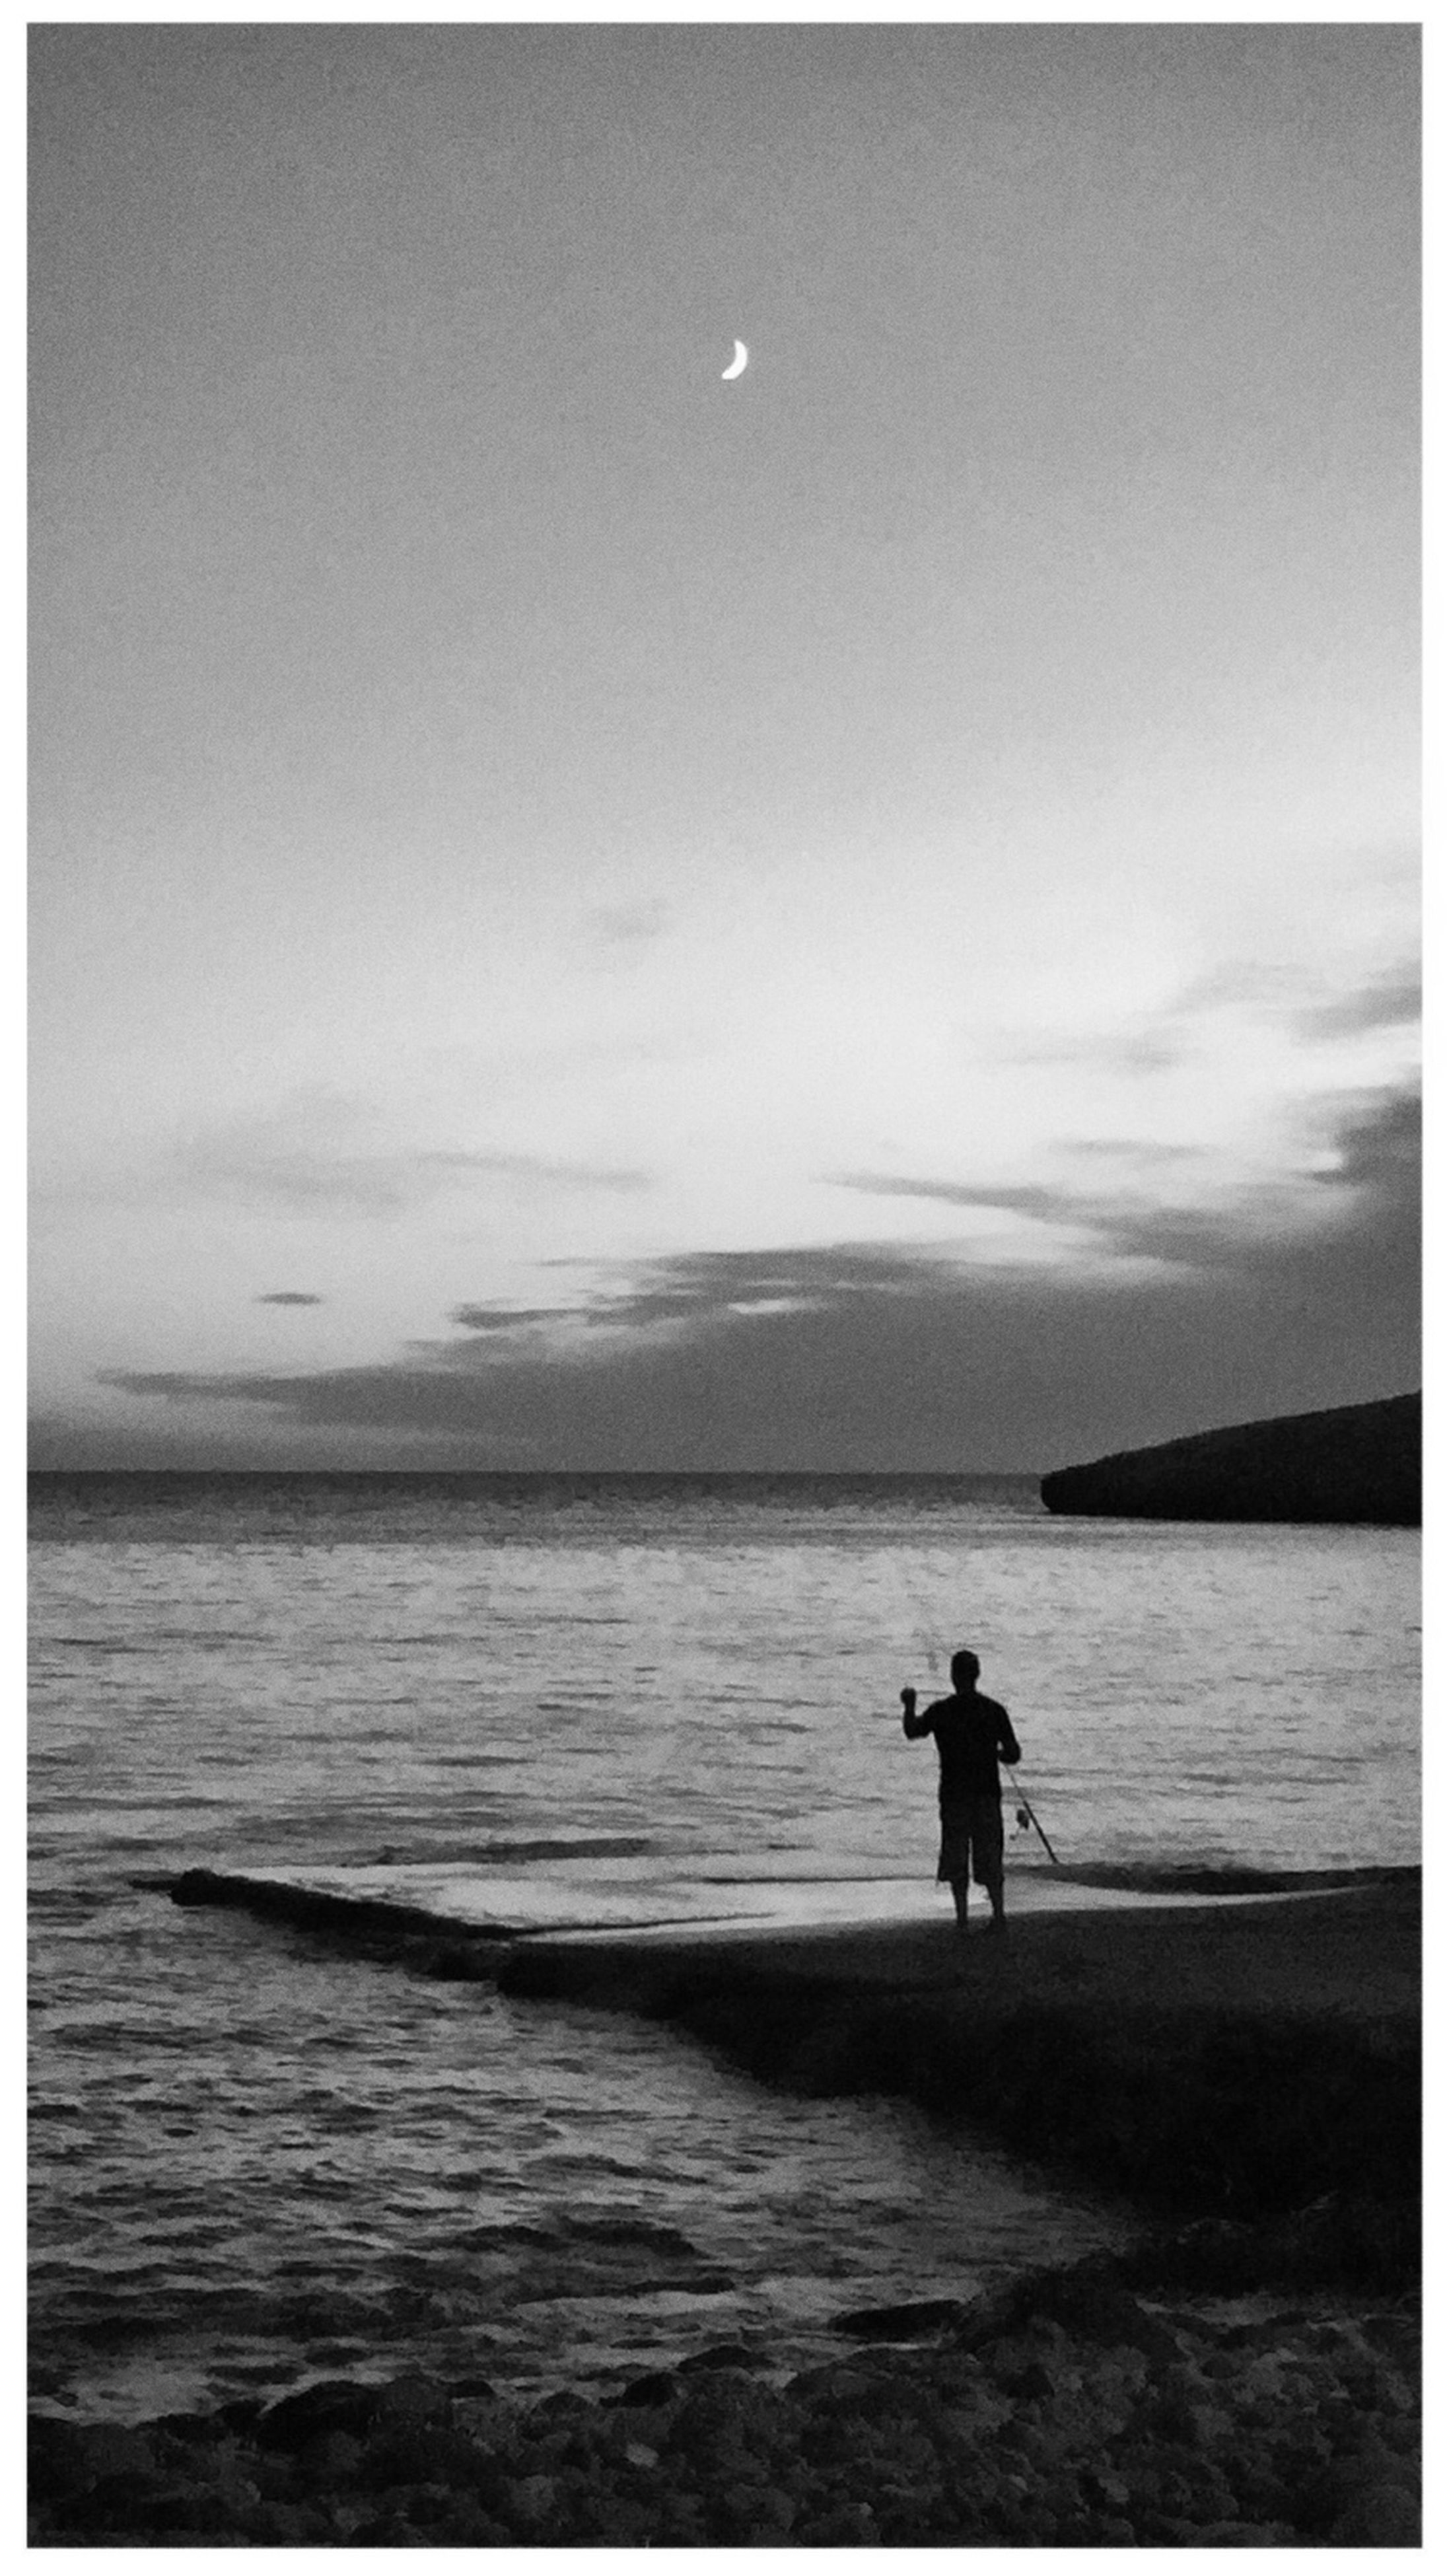 sea, water, transfer print, lifestyles, beach, leisure activity, sky, tranquil scene, full length, horizon over water, scenics, tranquility, auto post production filter, men, shore, rear view, beauty in nature, standing